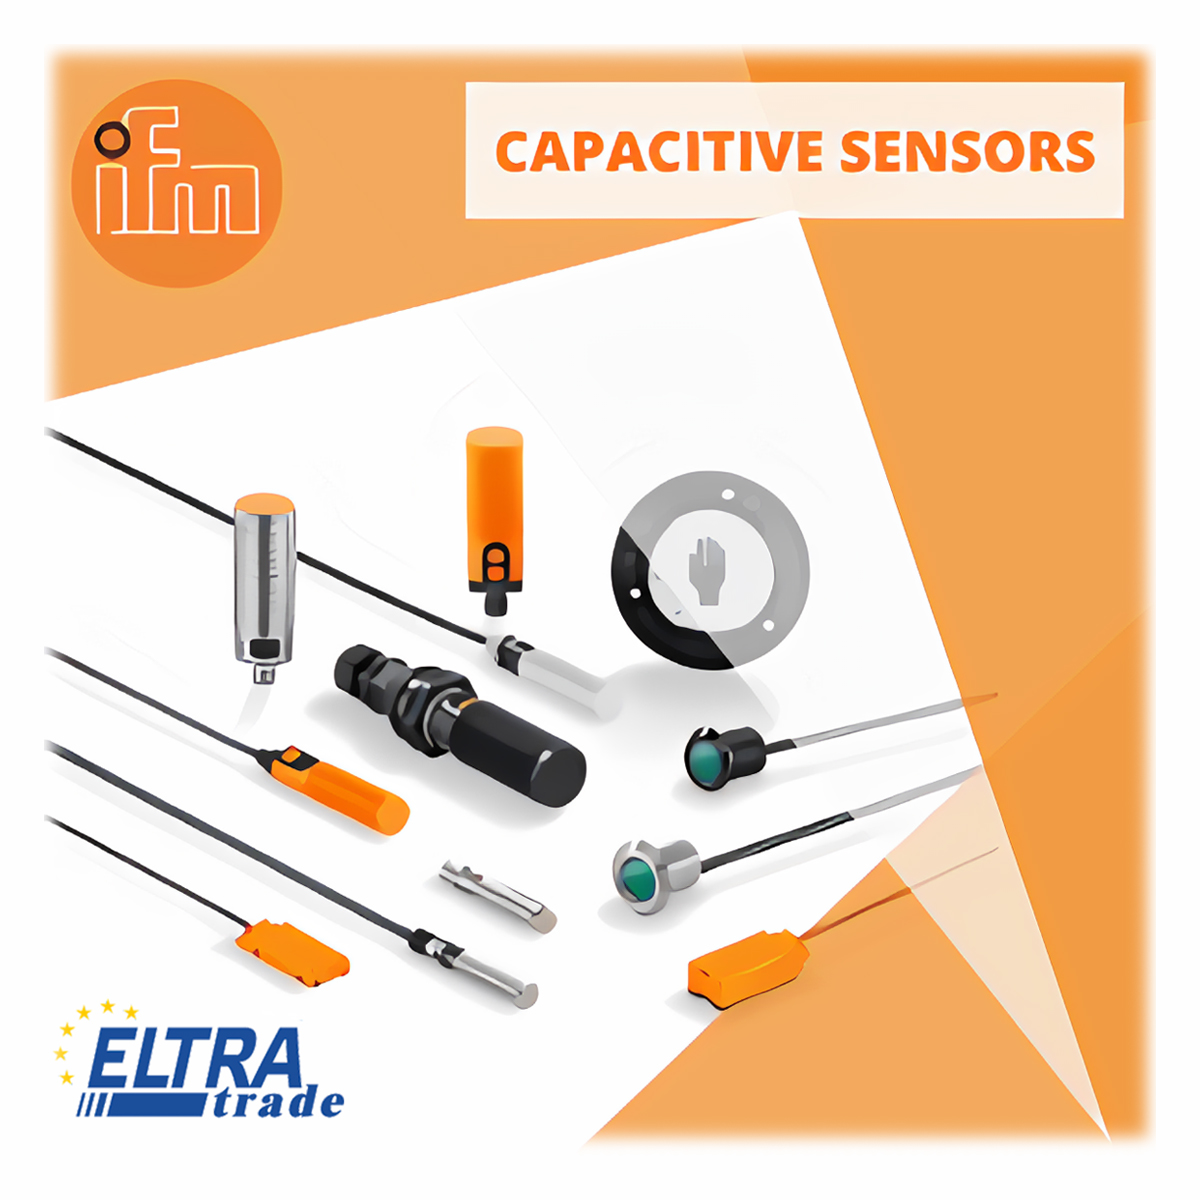 ifm capacitive sensors photo